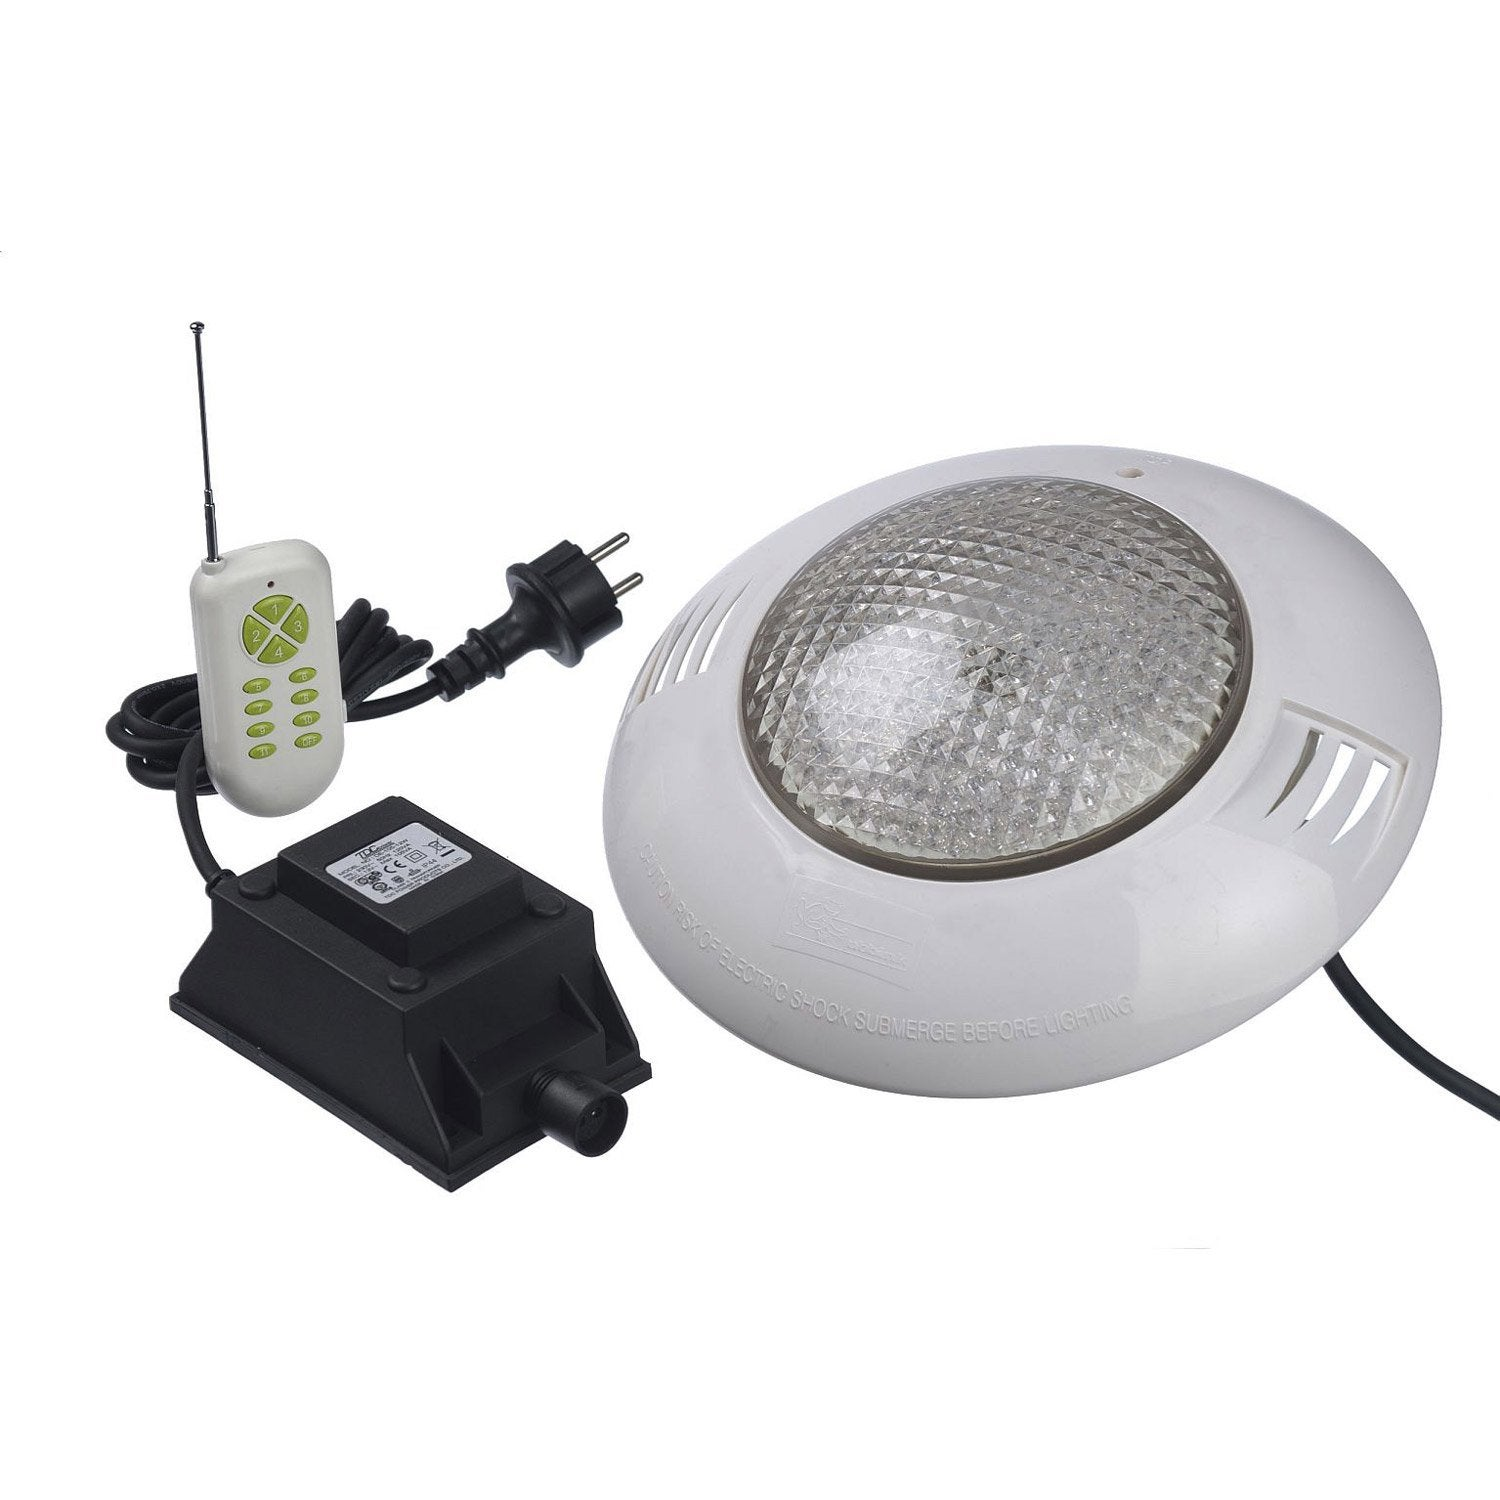 Spot led pour piscine bois multicolore 35 w leroy merlin - Lumiere led pour piscine ...